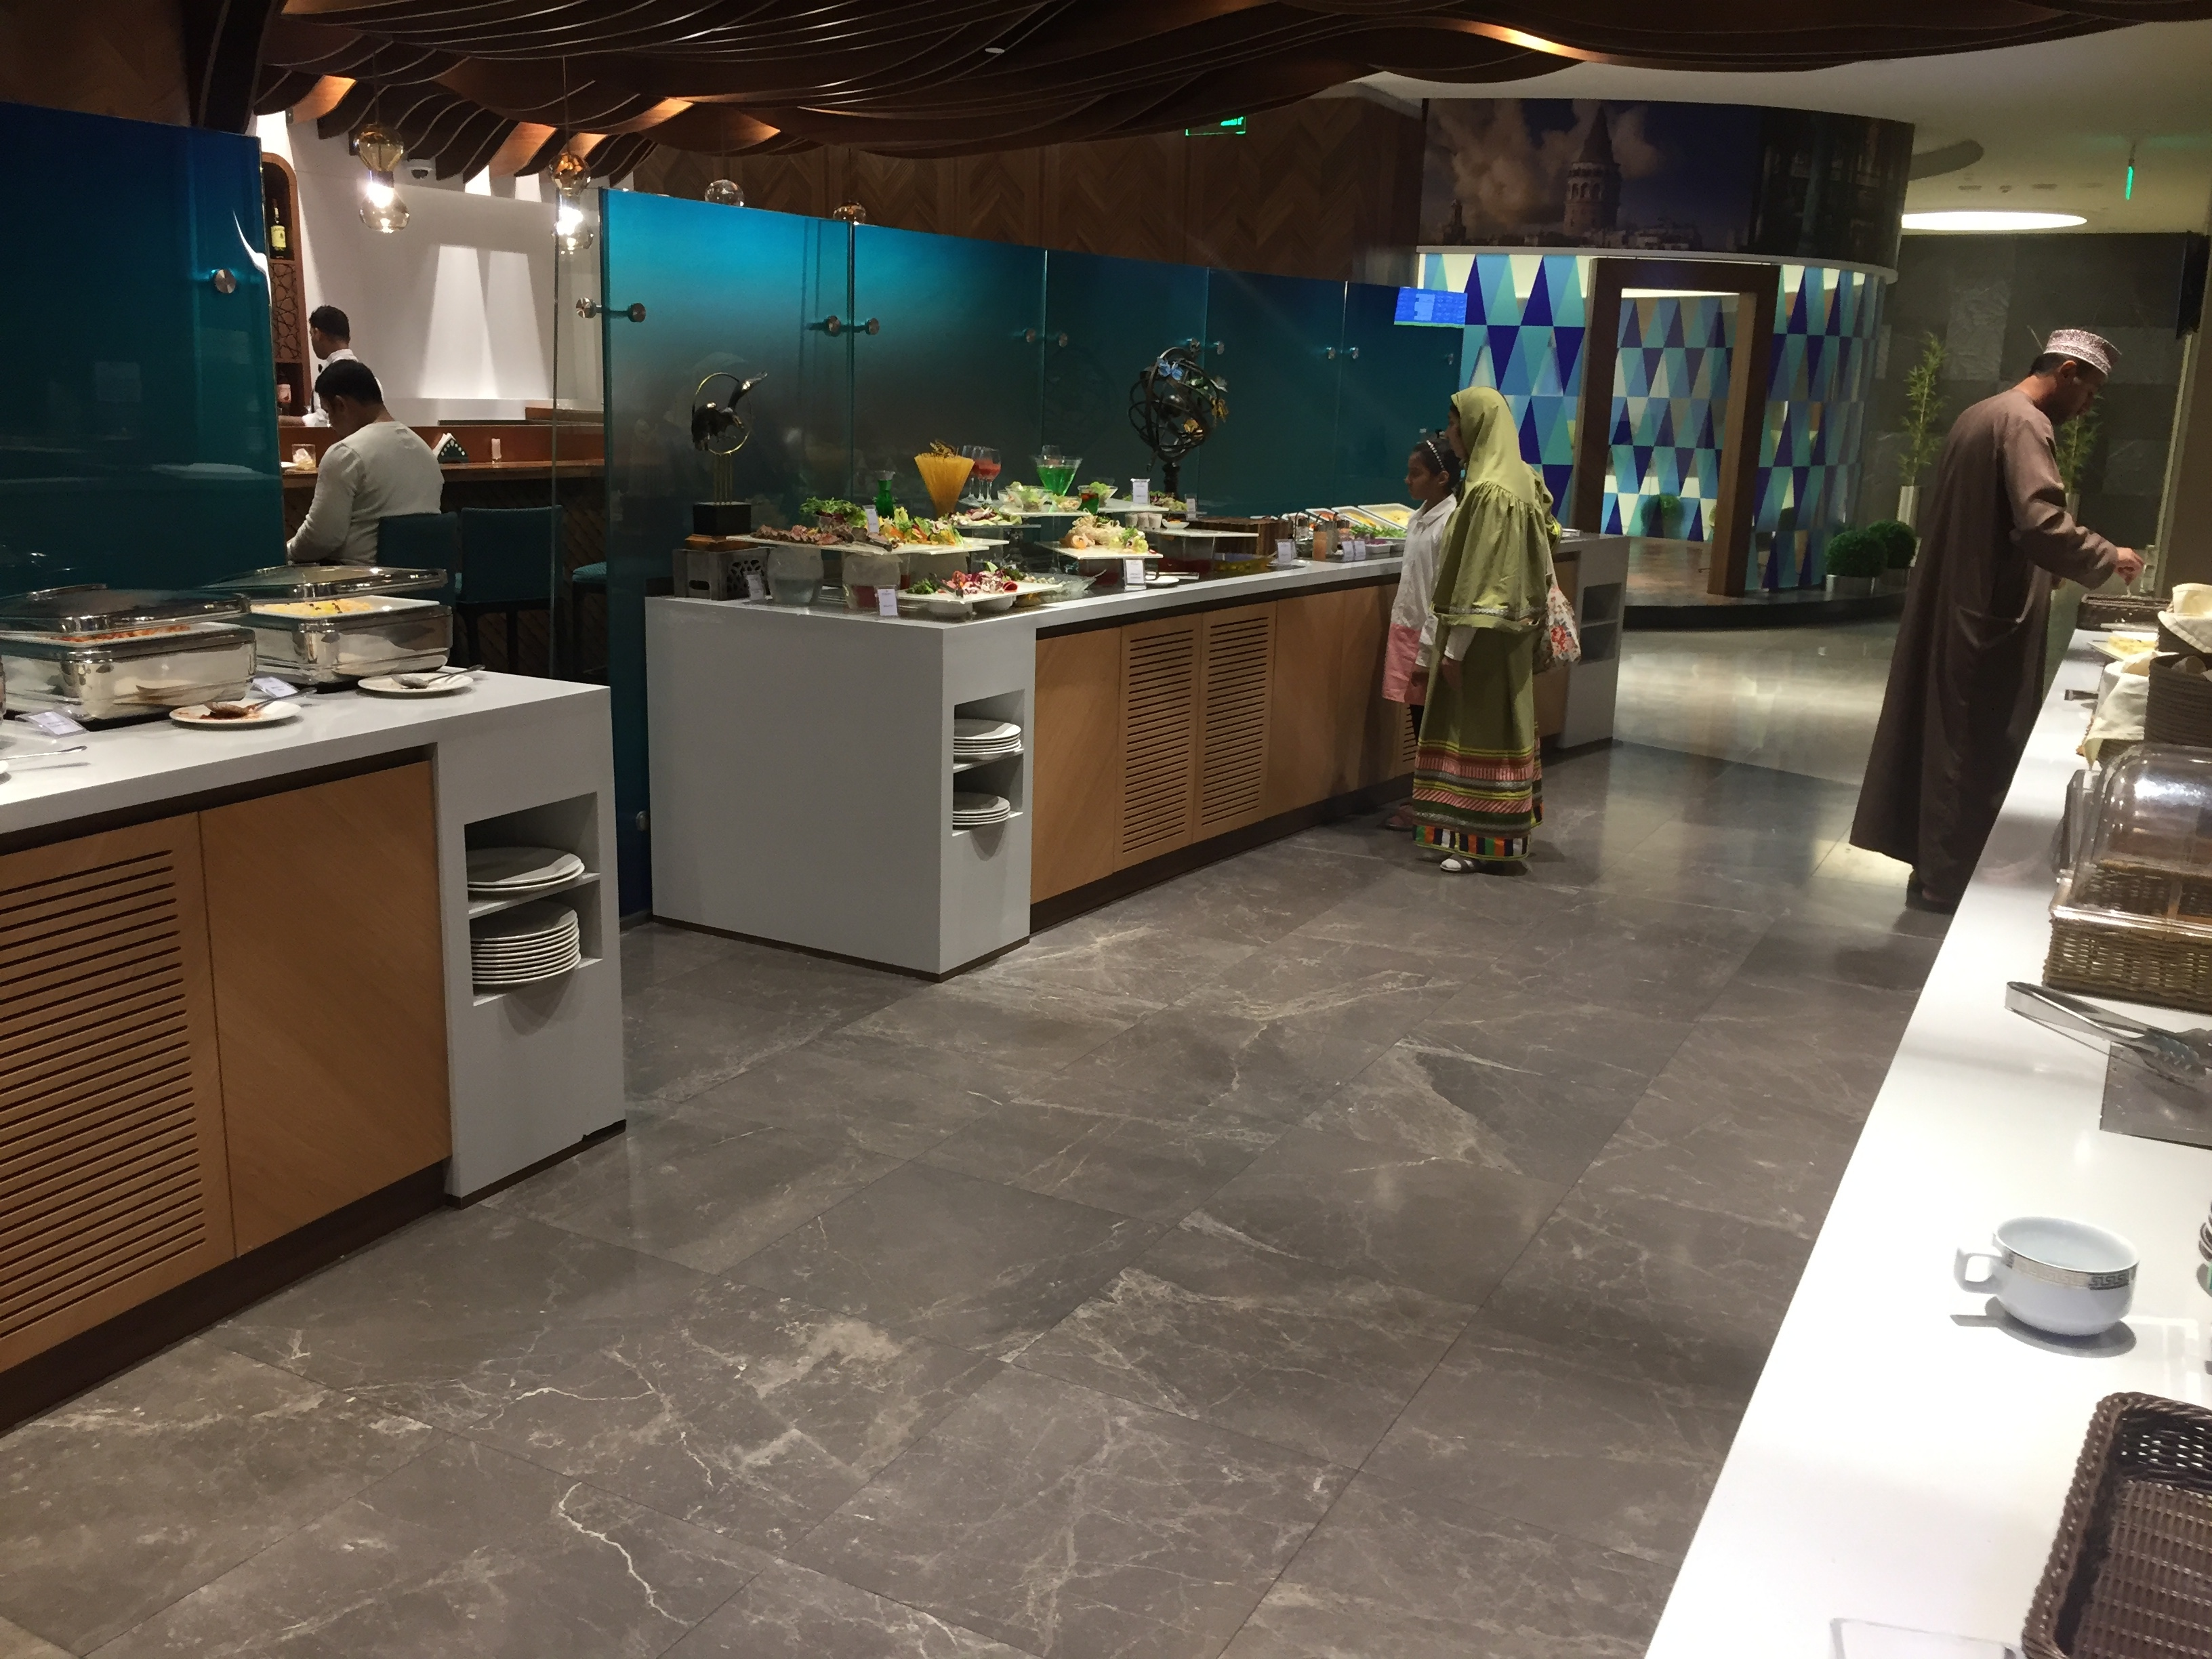 Buffet area | The Primeclass Lounge Muscat